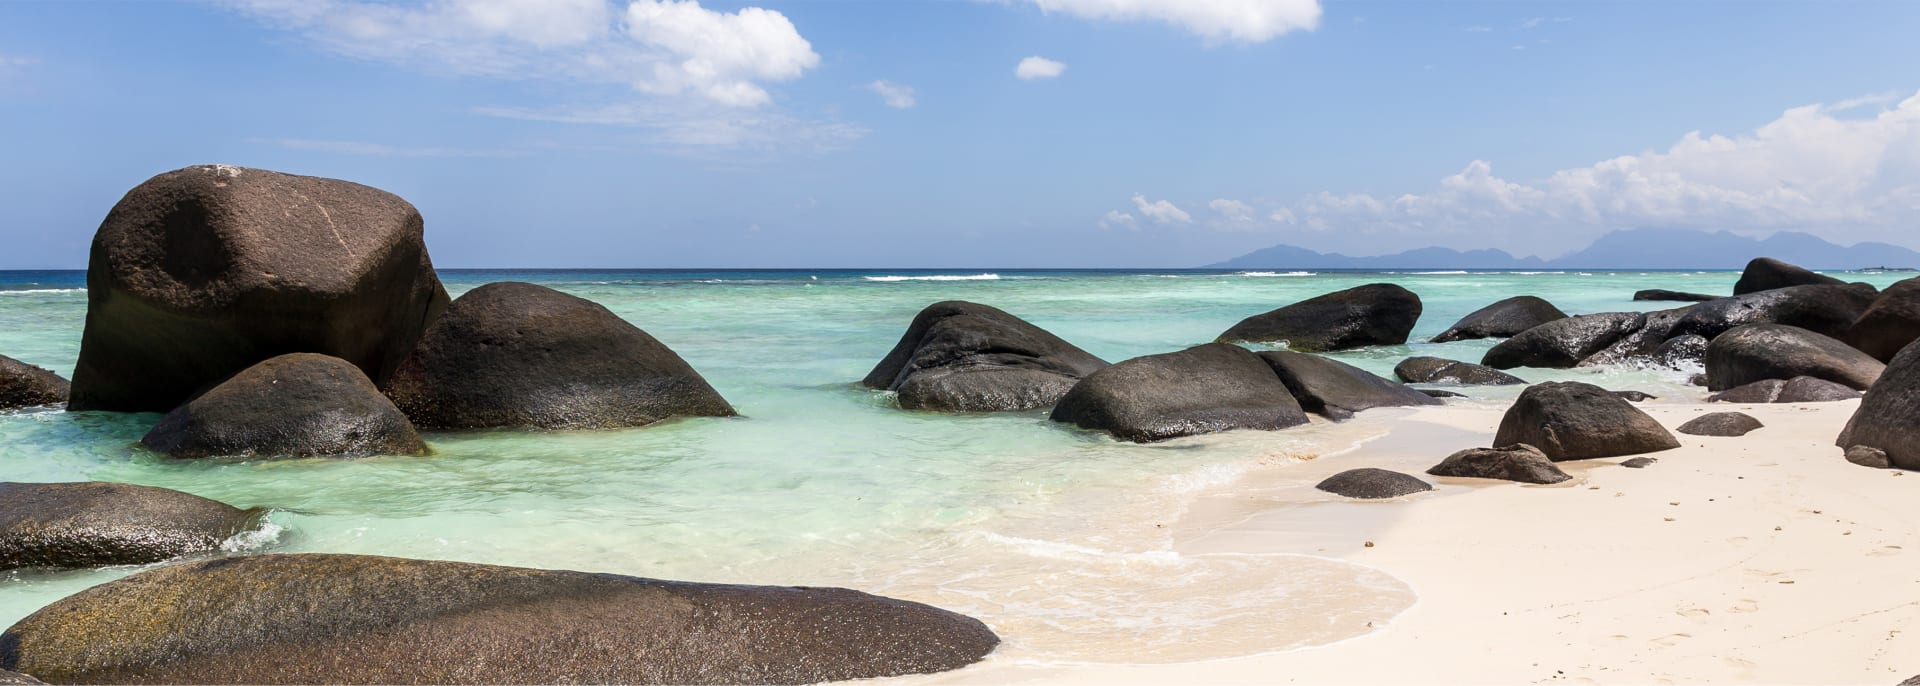 Beautiful beach and turquoise ocean on Silhouette island, Seychelles